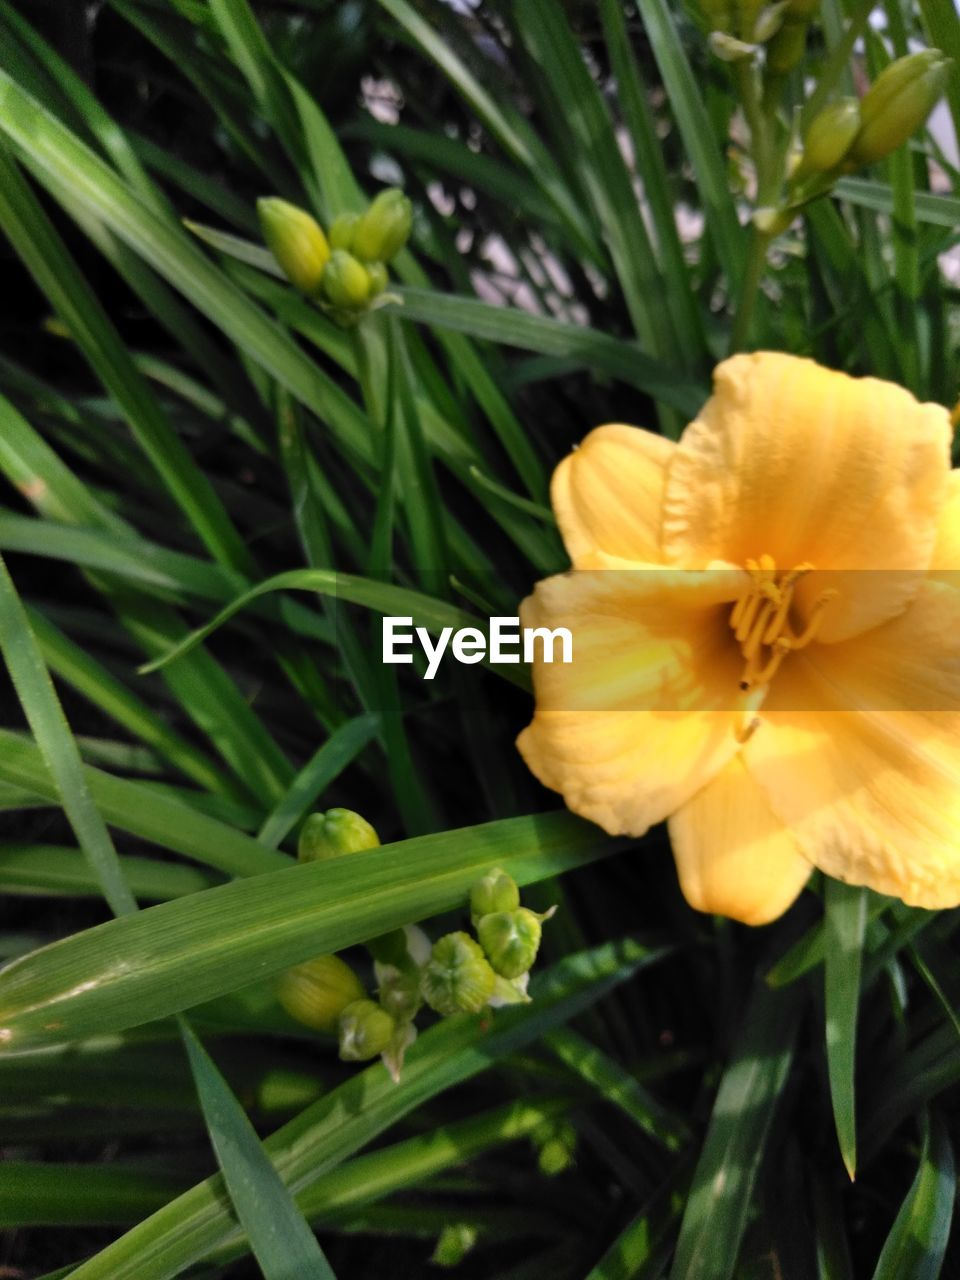 plant, flowering plant, growth, beauty in nature, flower, freshness, fragility, flower head, inflorescence, vulnerability, petal, close-up, yellow, green color, nature, day, plant part, leaf, no people, focus on foreground, pollen